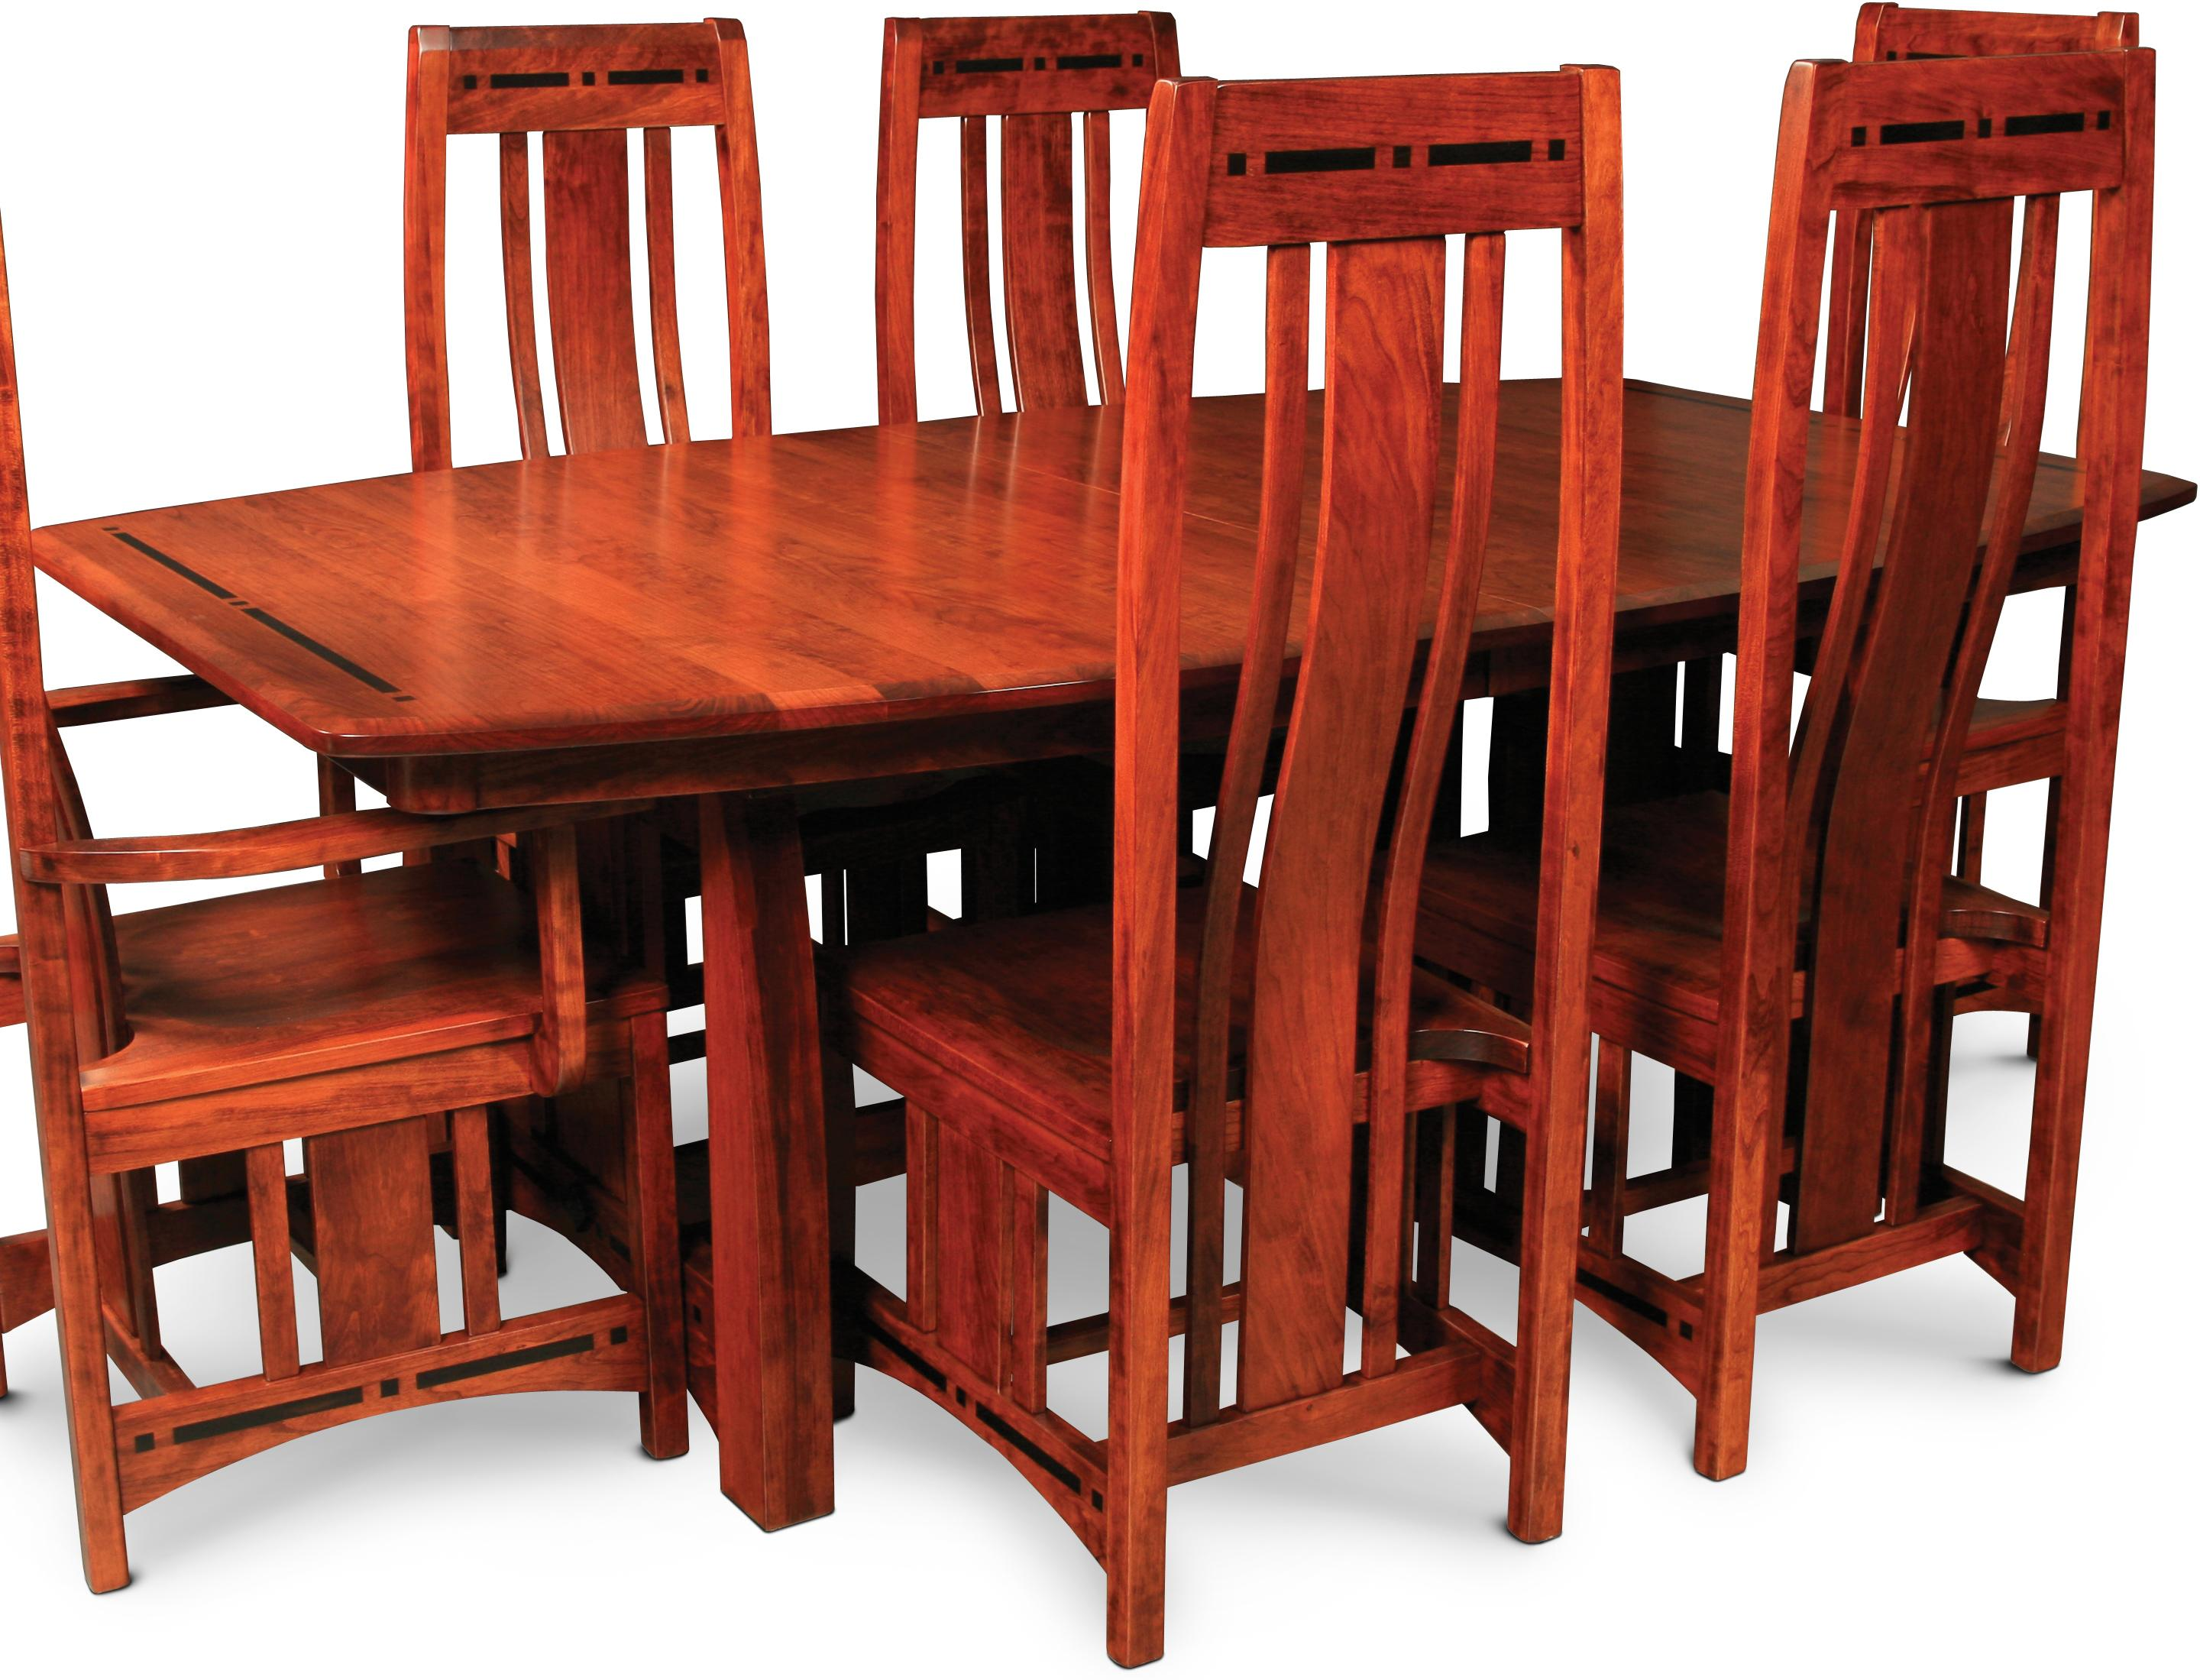 Council Craftsman Furniture Dining Room